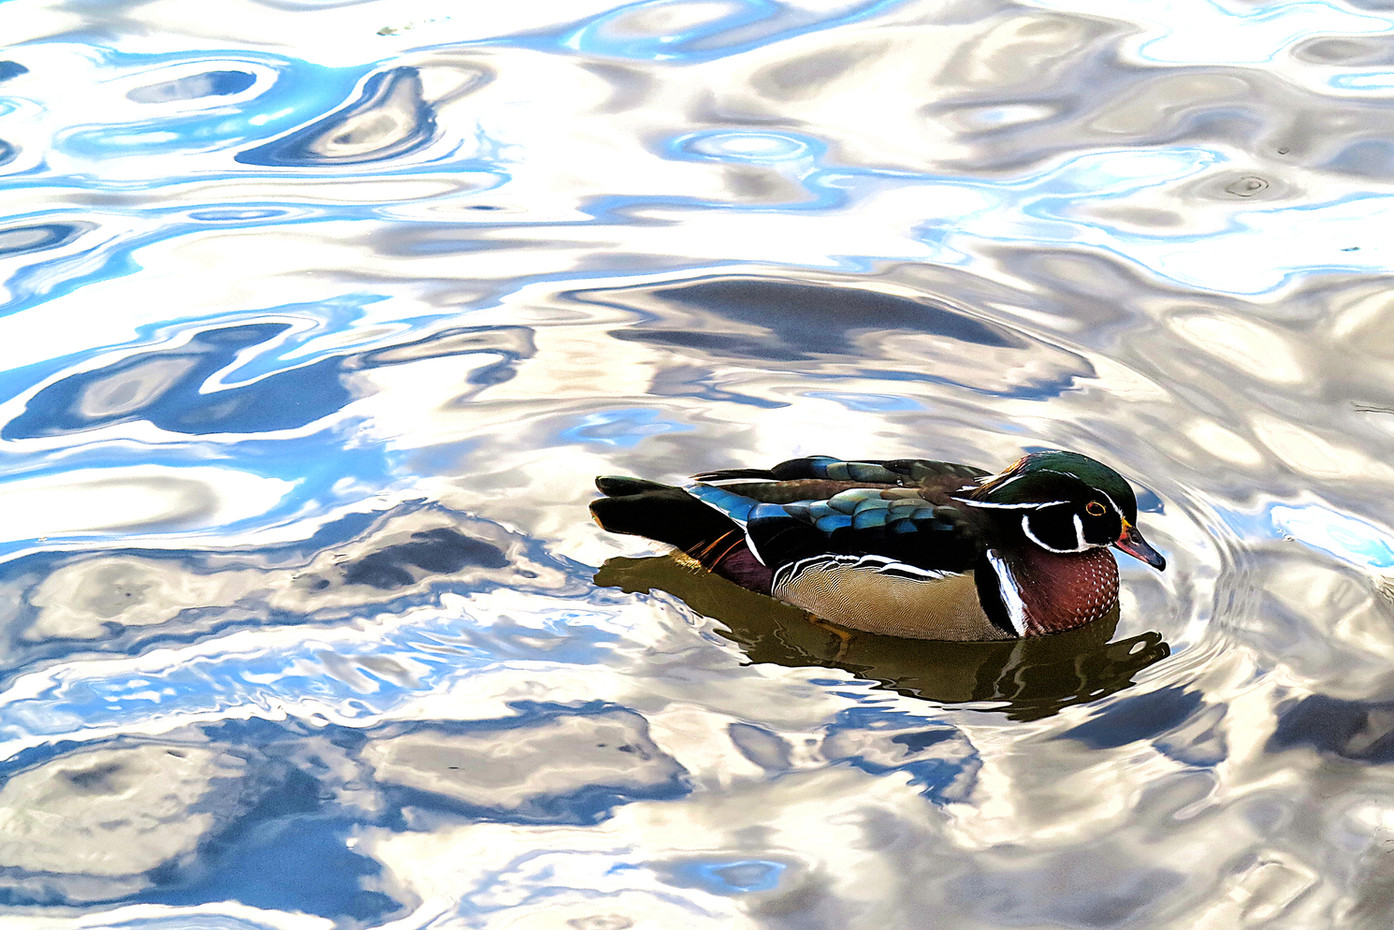 Wood Duck in Central Park NY, USA